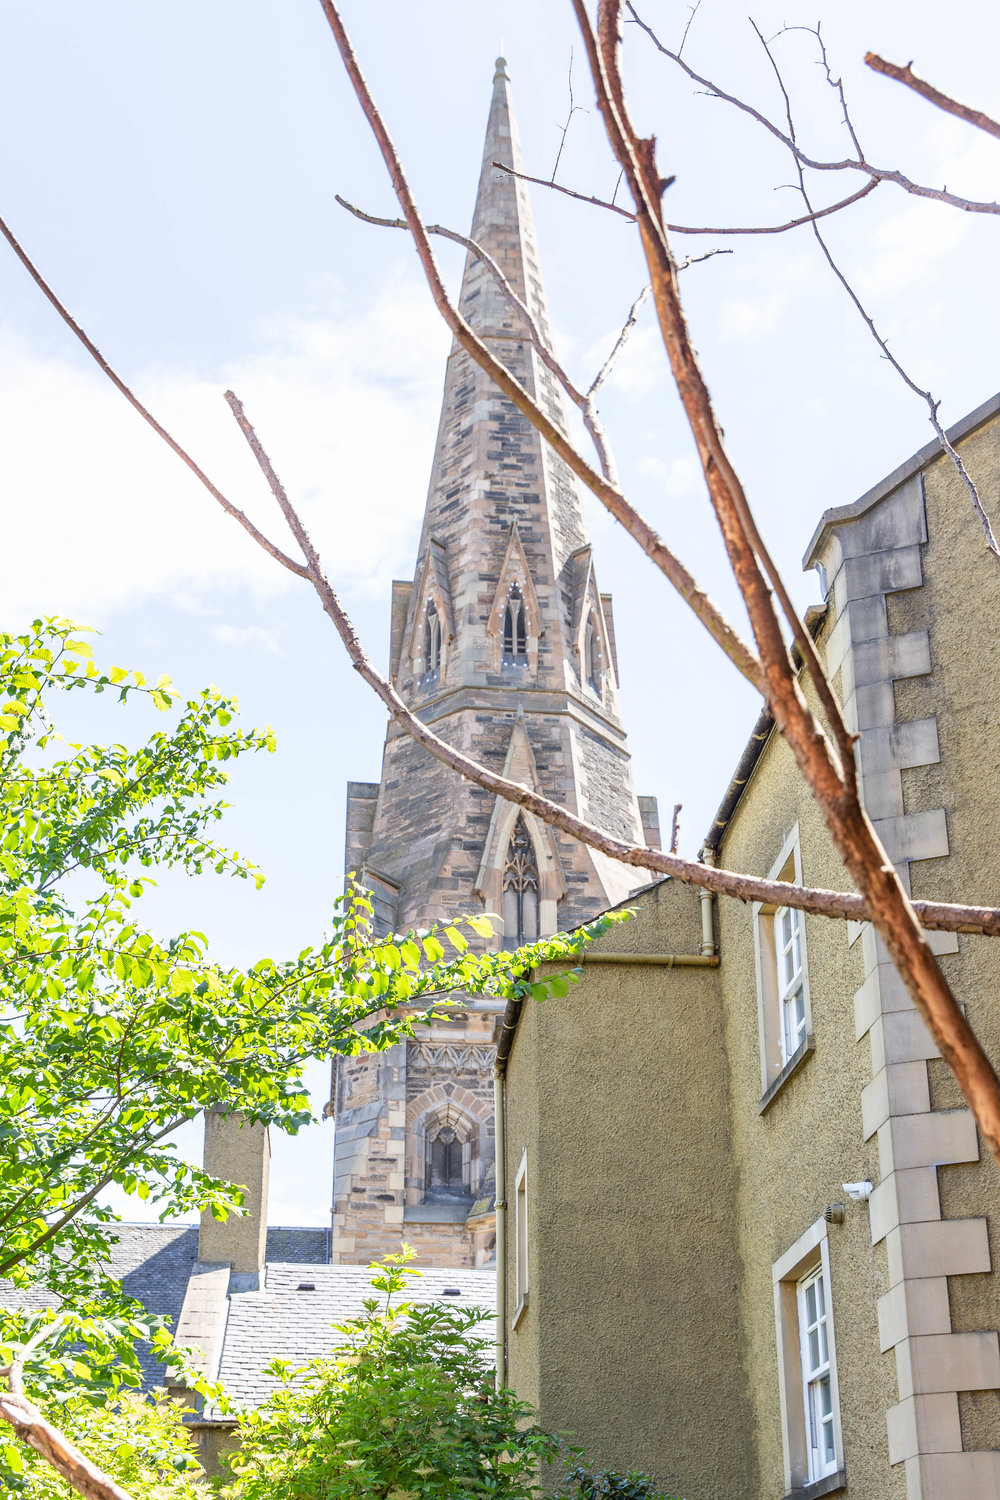 19-property-photography-edinburgh-airbnb.jpg